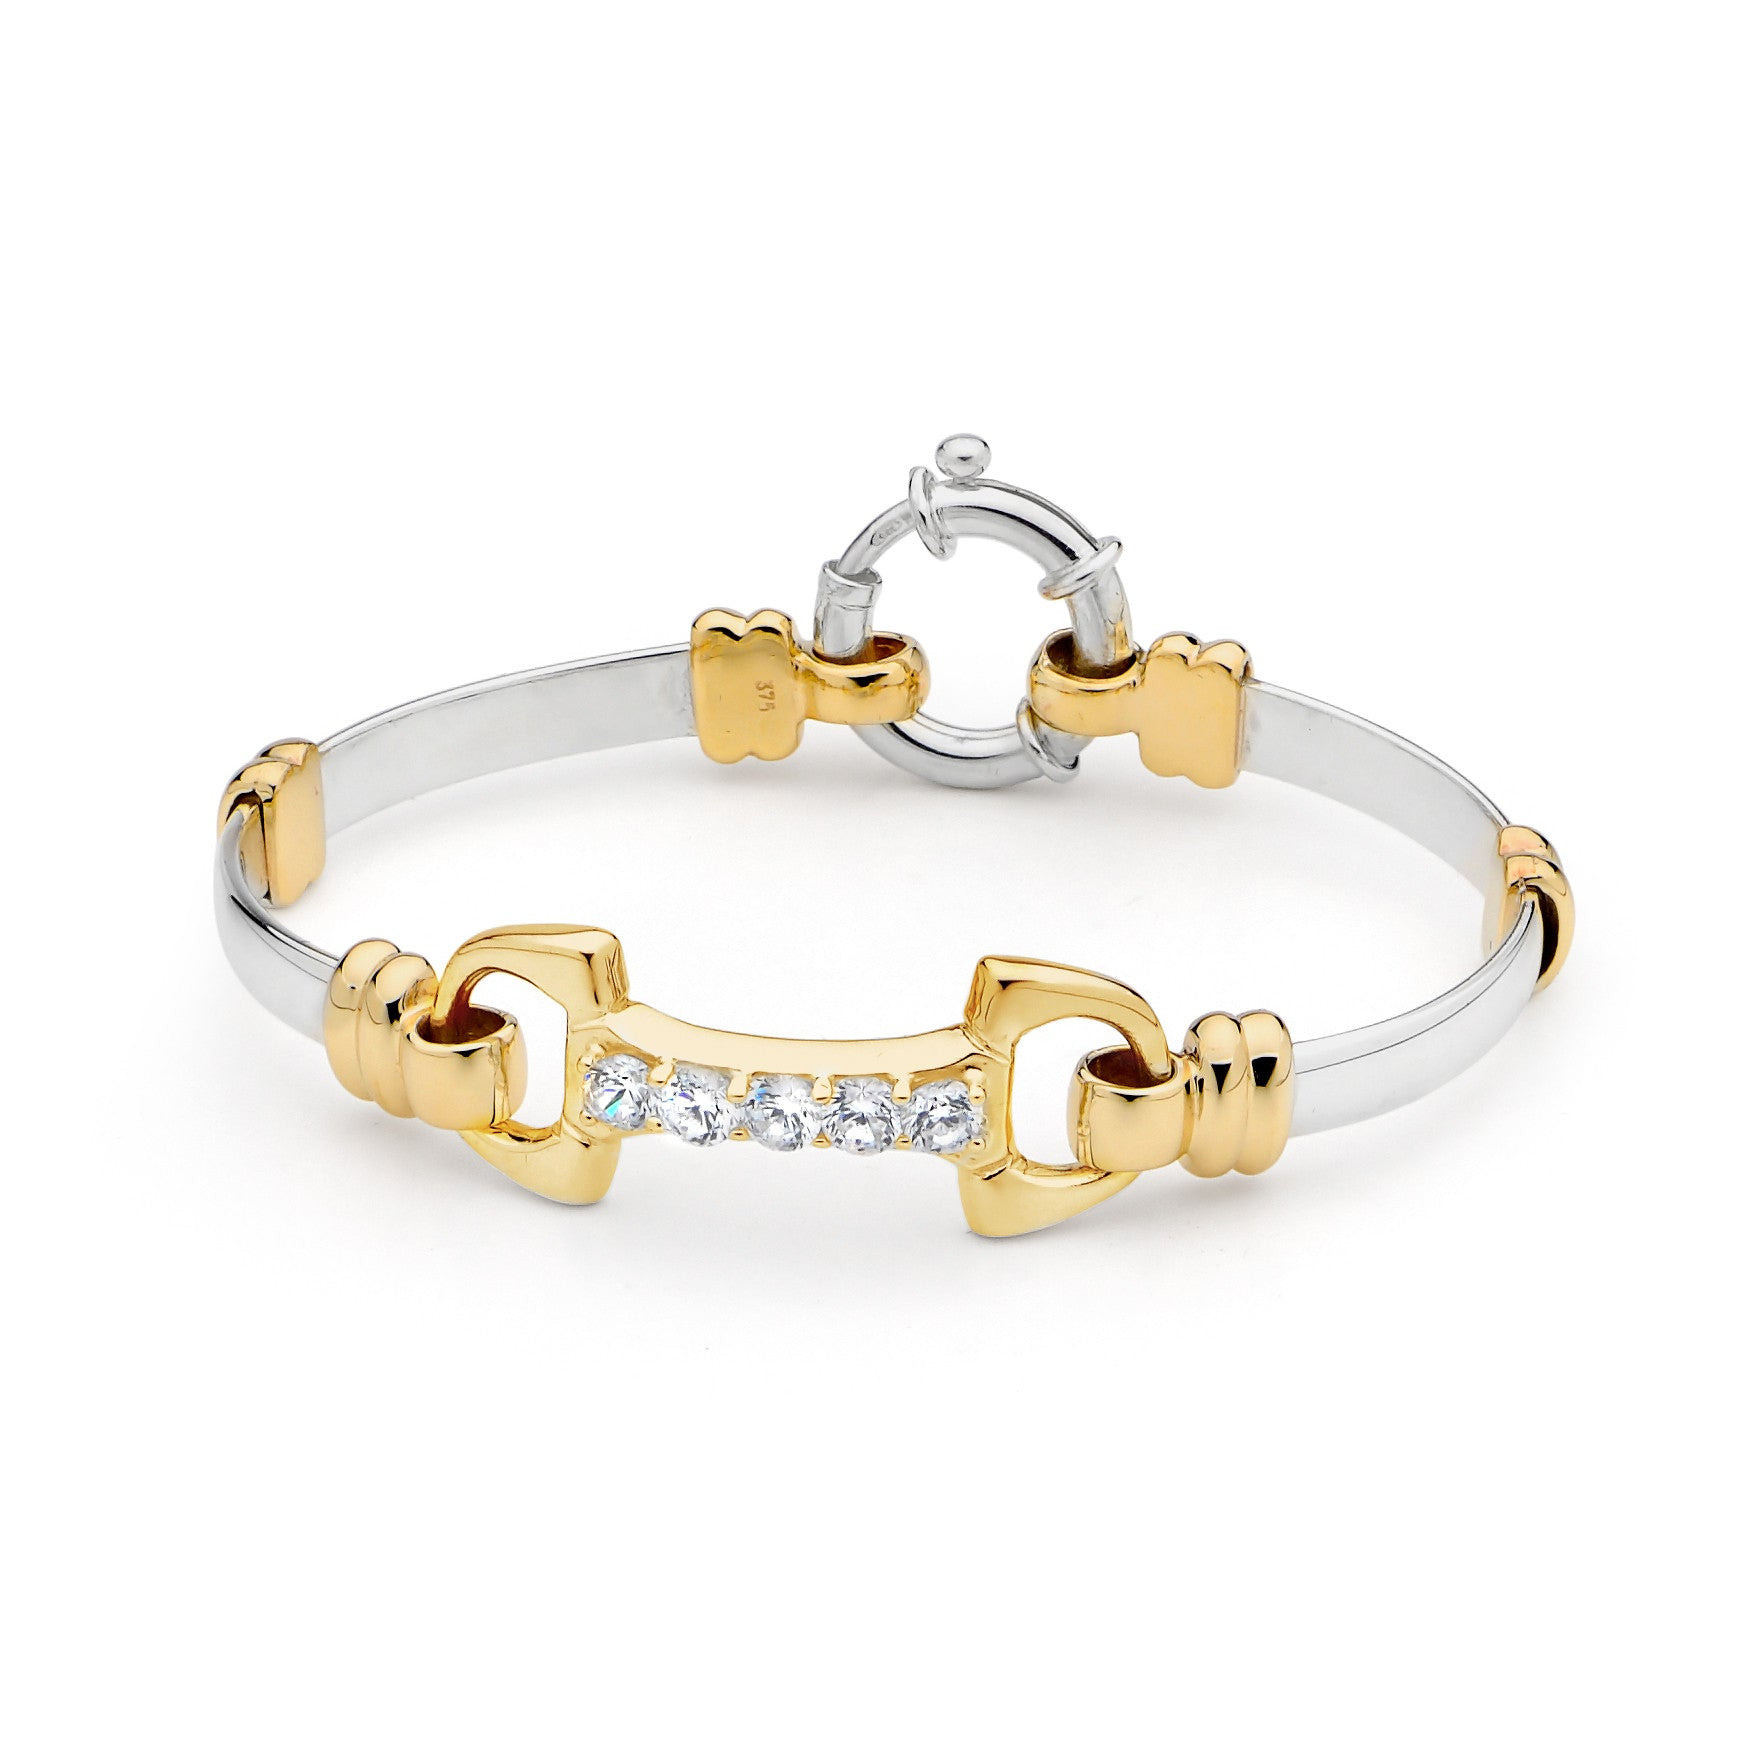 Fitted Yellow Gold Bit with Cubic Zirconia Sterling Silver Bracelet - 9ct Yellow Gold Accents on Sterling Silver